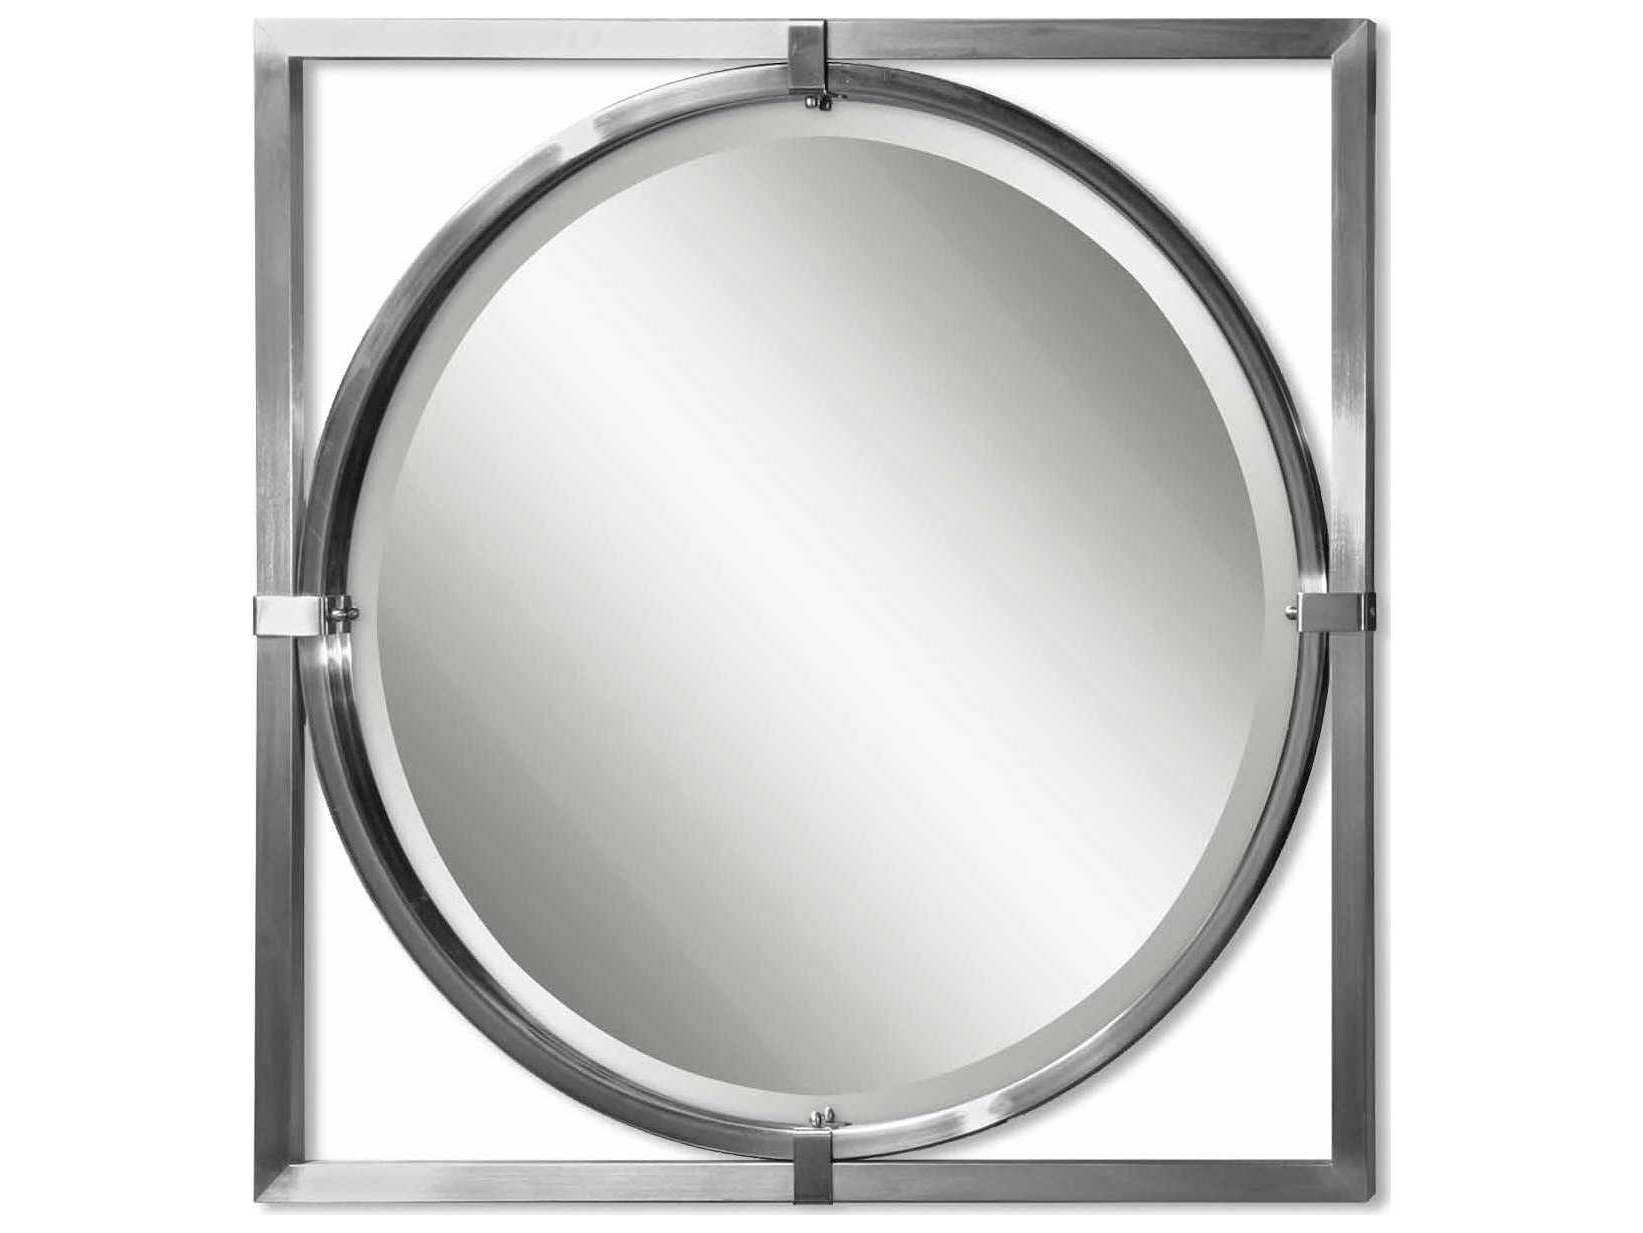 Uttermost Kagami 30 X 30 Brushed Nickel Wall Mirror Inside Well Liked Brushed Nickel Wall Mirrors (View 6 of 14)